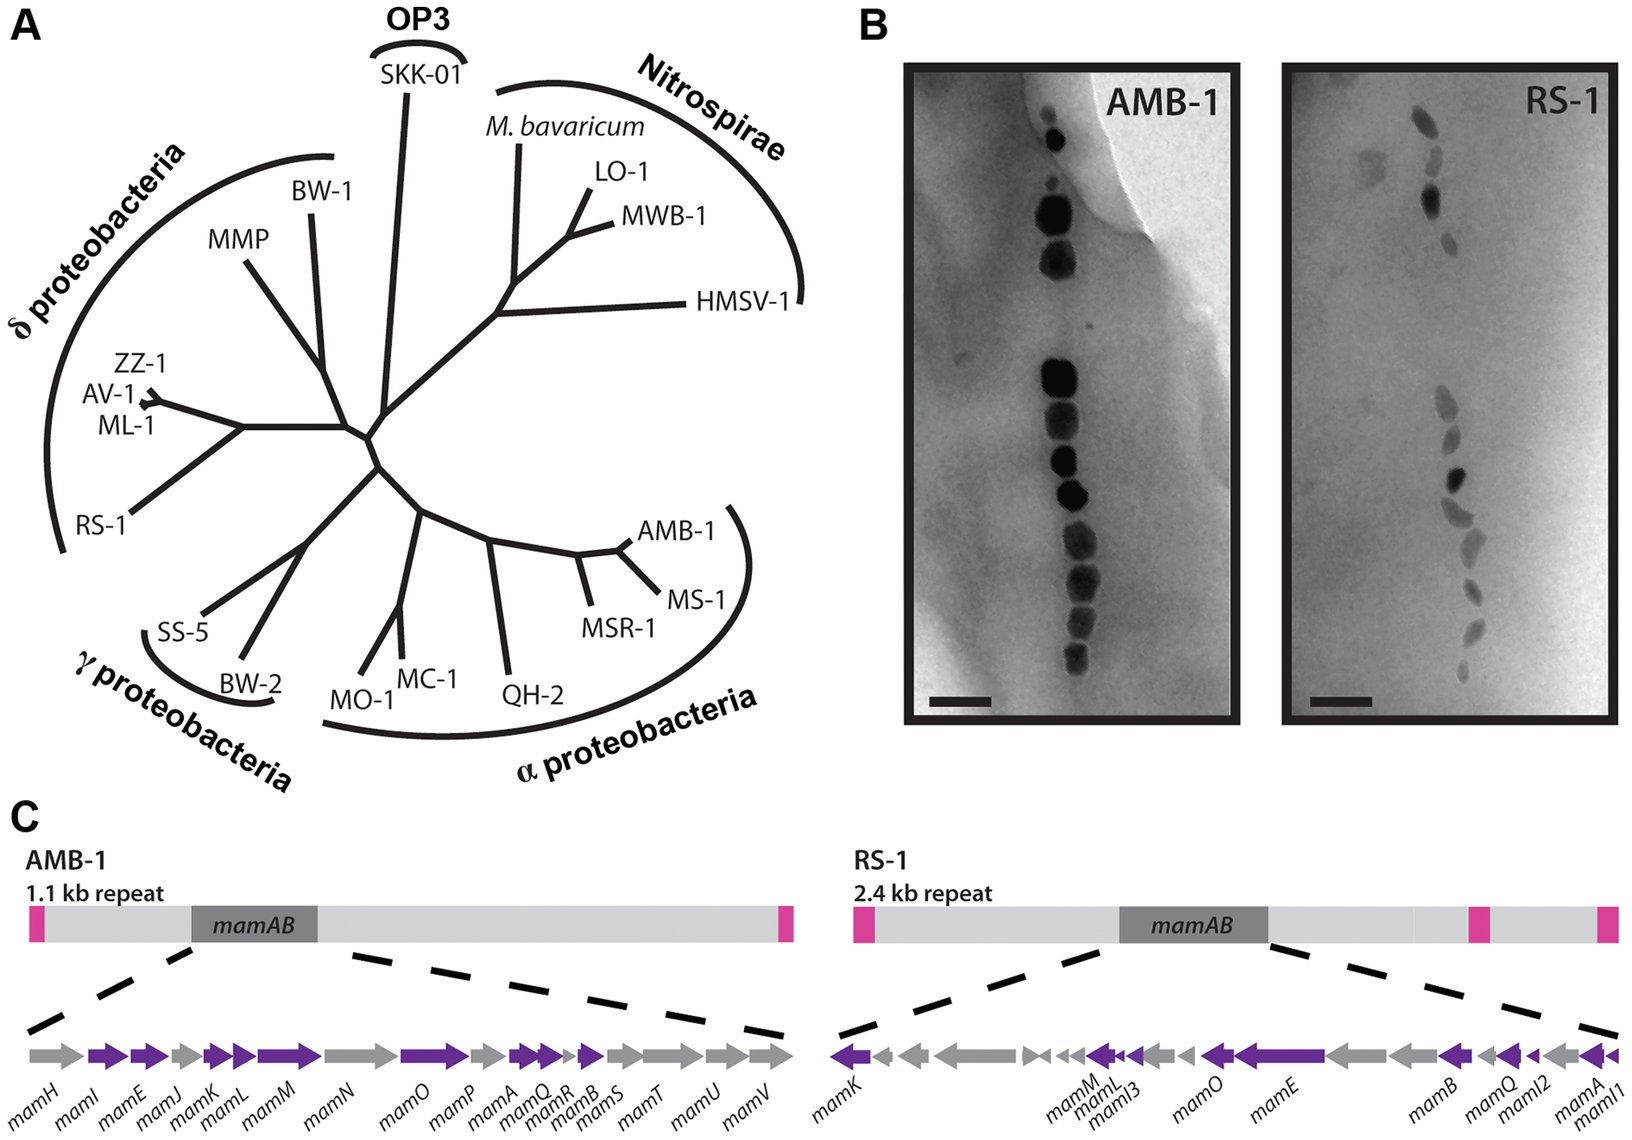 RS-1 is a representative of a group of bacteria that are phylogenetically and phenotypically distinct from the magnetotactic α-proteobacteria.